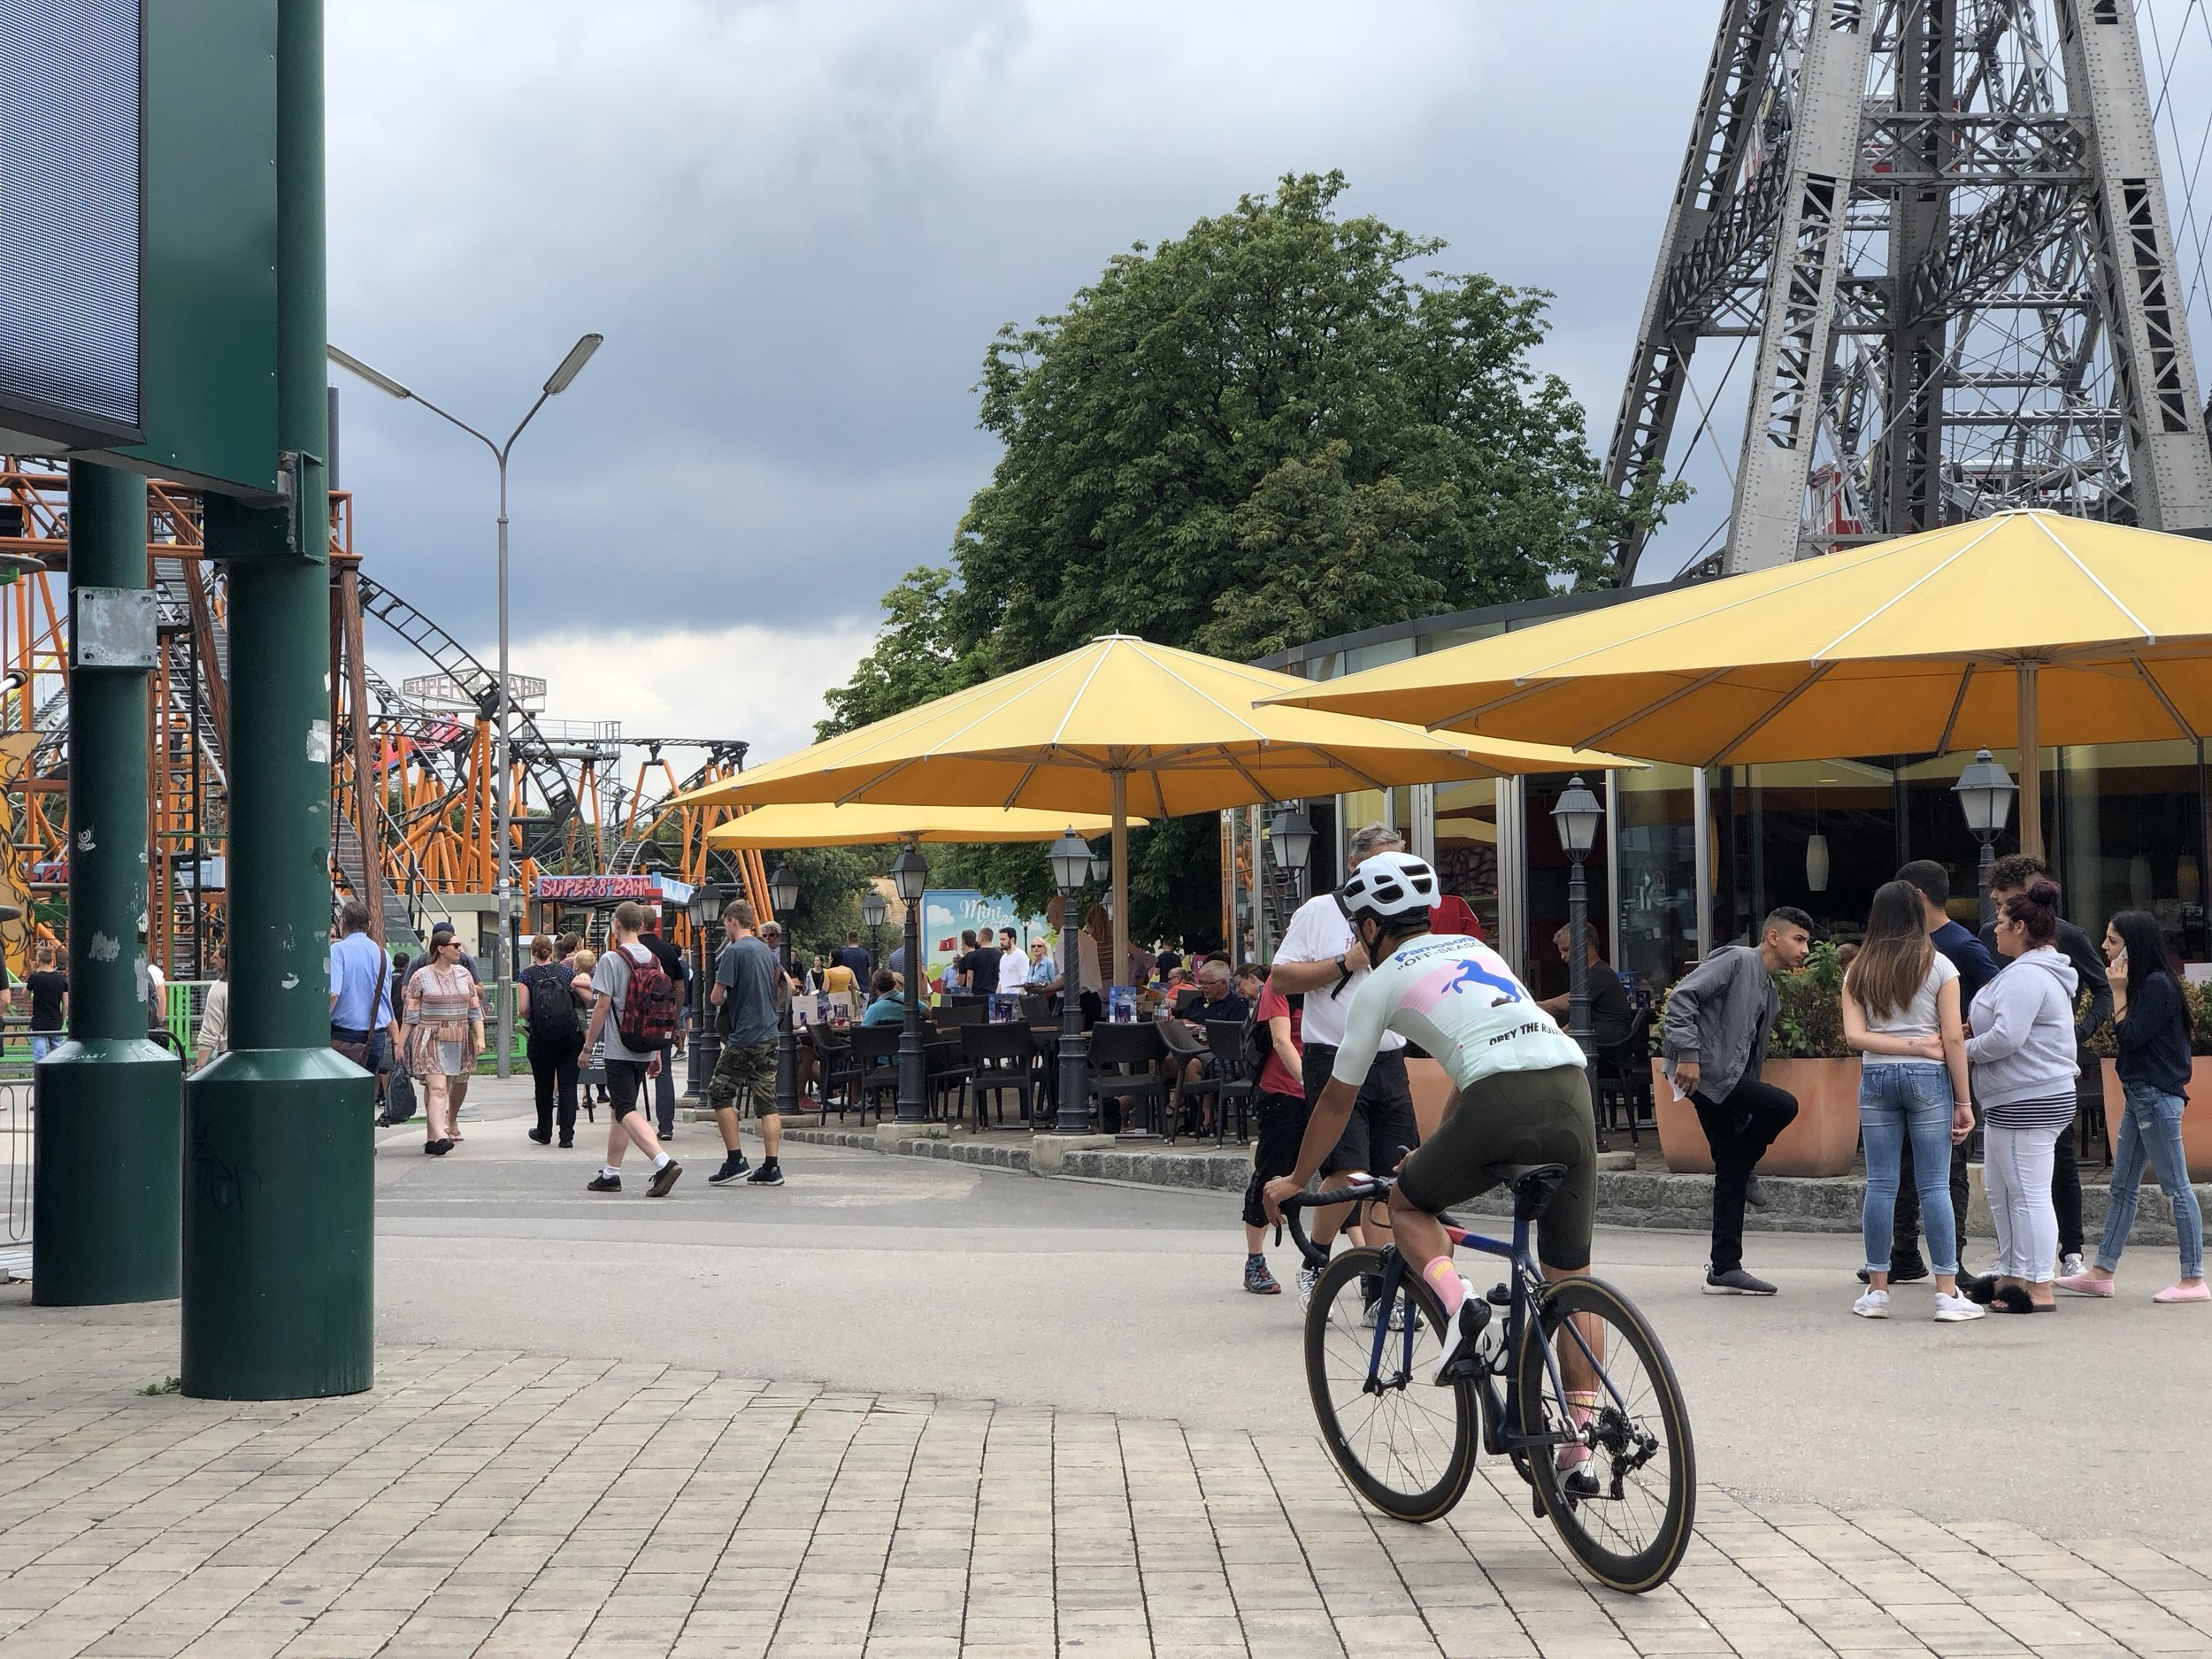 A ride through the Prater amusement park is an experience but must be done with care